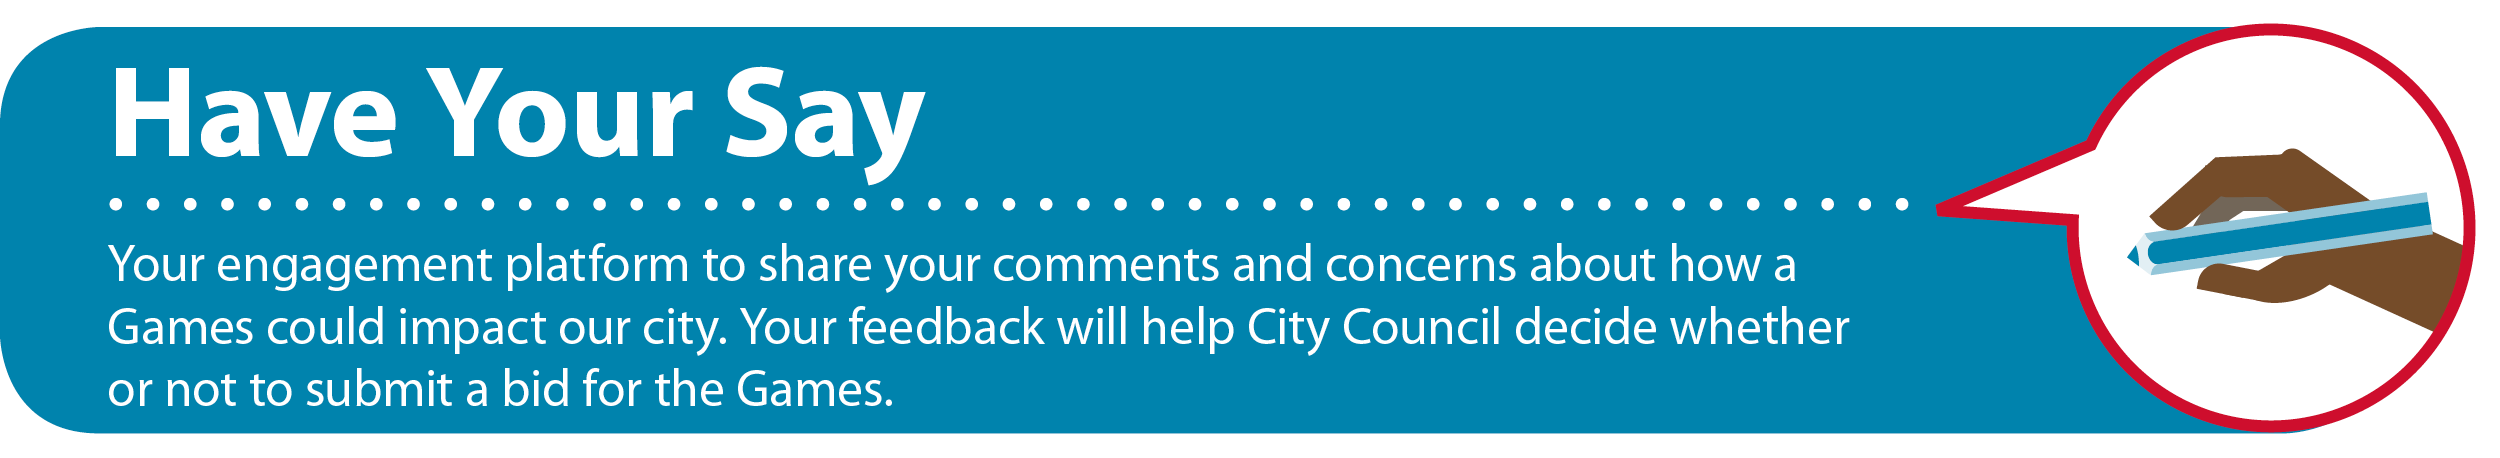 Have your say, your engagement platform to share your comments and concerns about how a Games could impact our city.